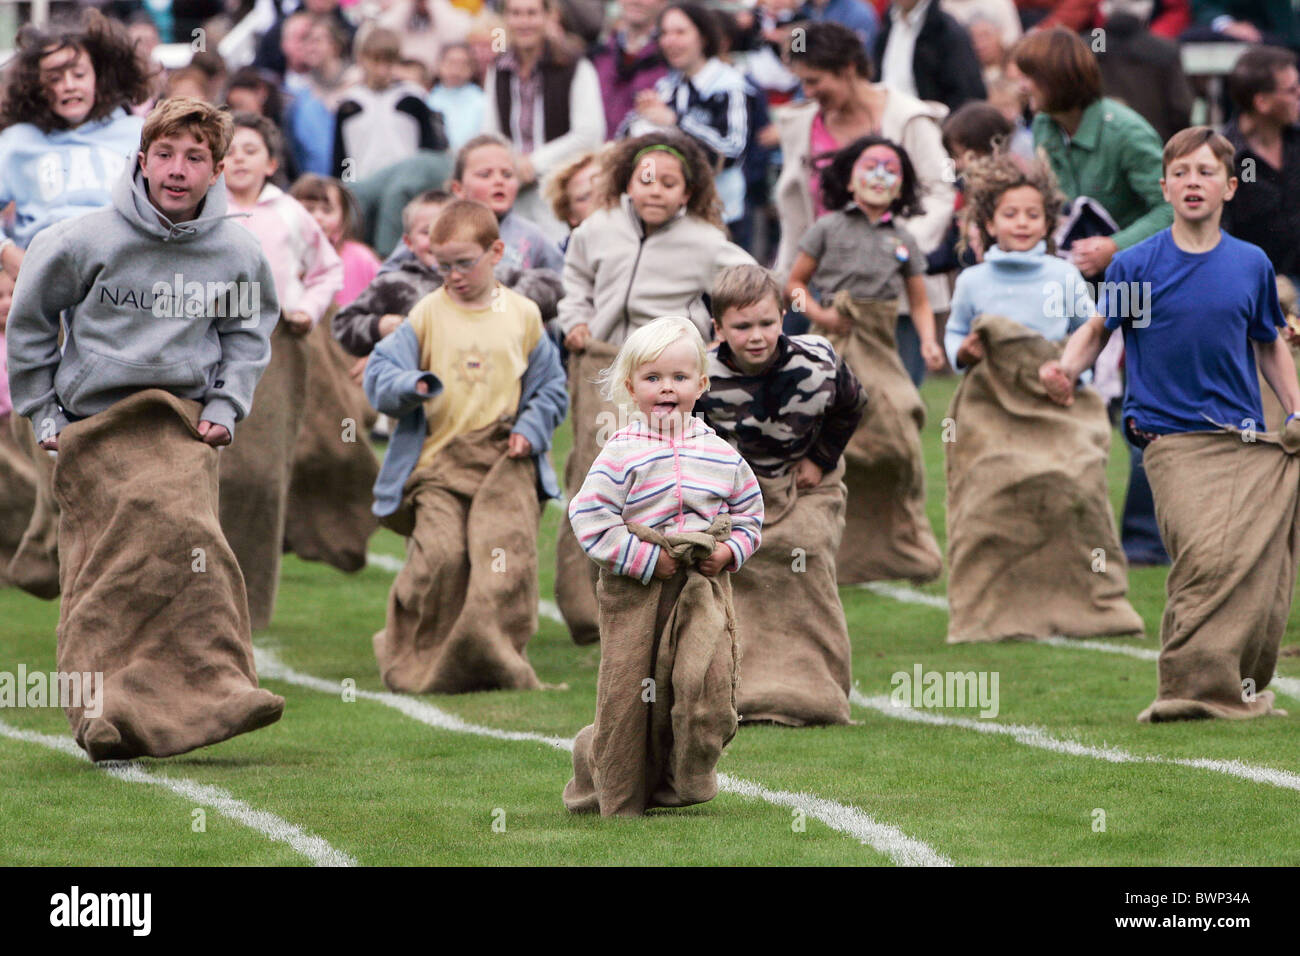 The traditional children's sack race at the Braemar Games Highland gathering - Stock Image